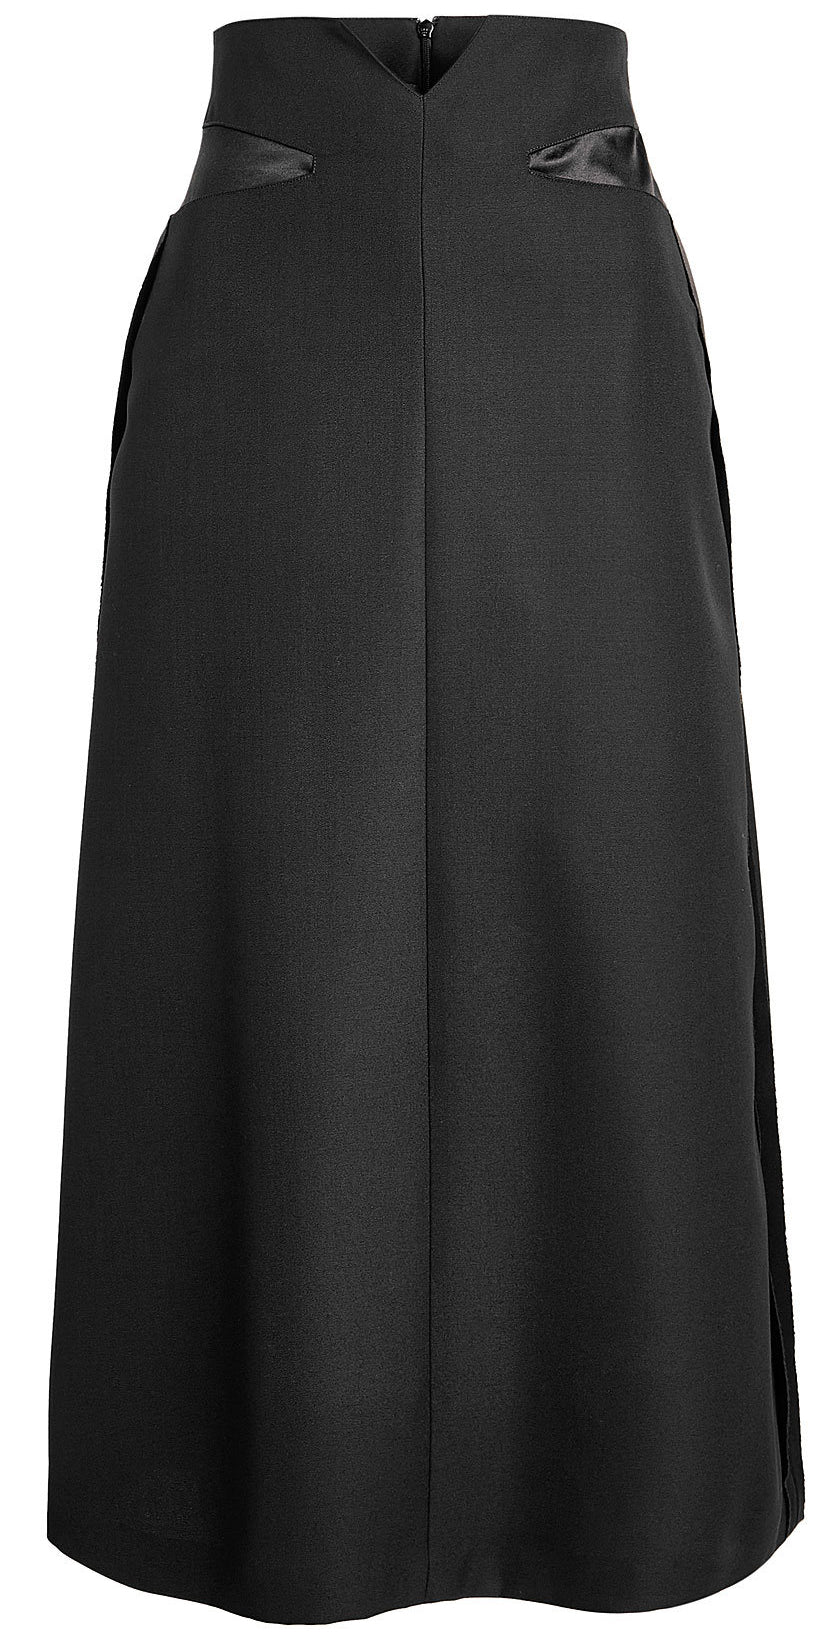 Maison Margiela - Black wool midi skirt with satin panels